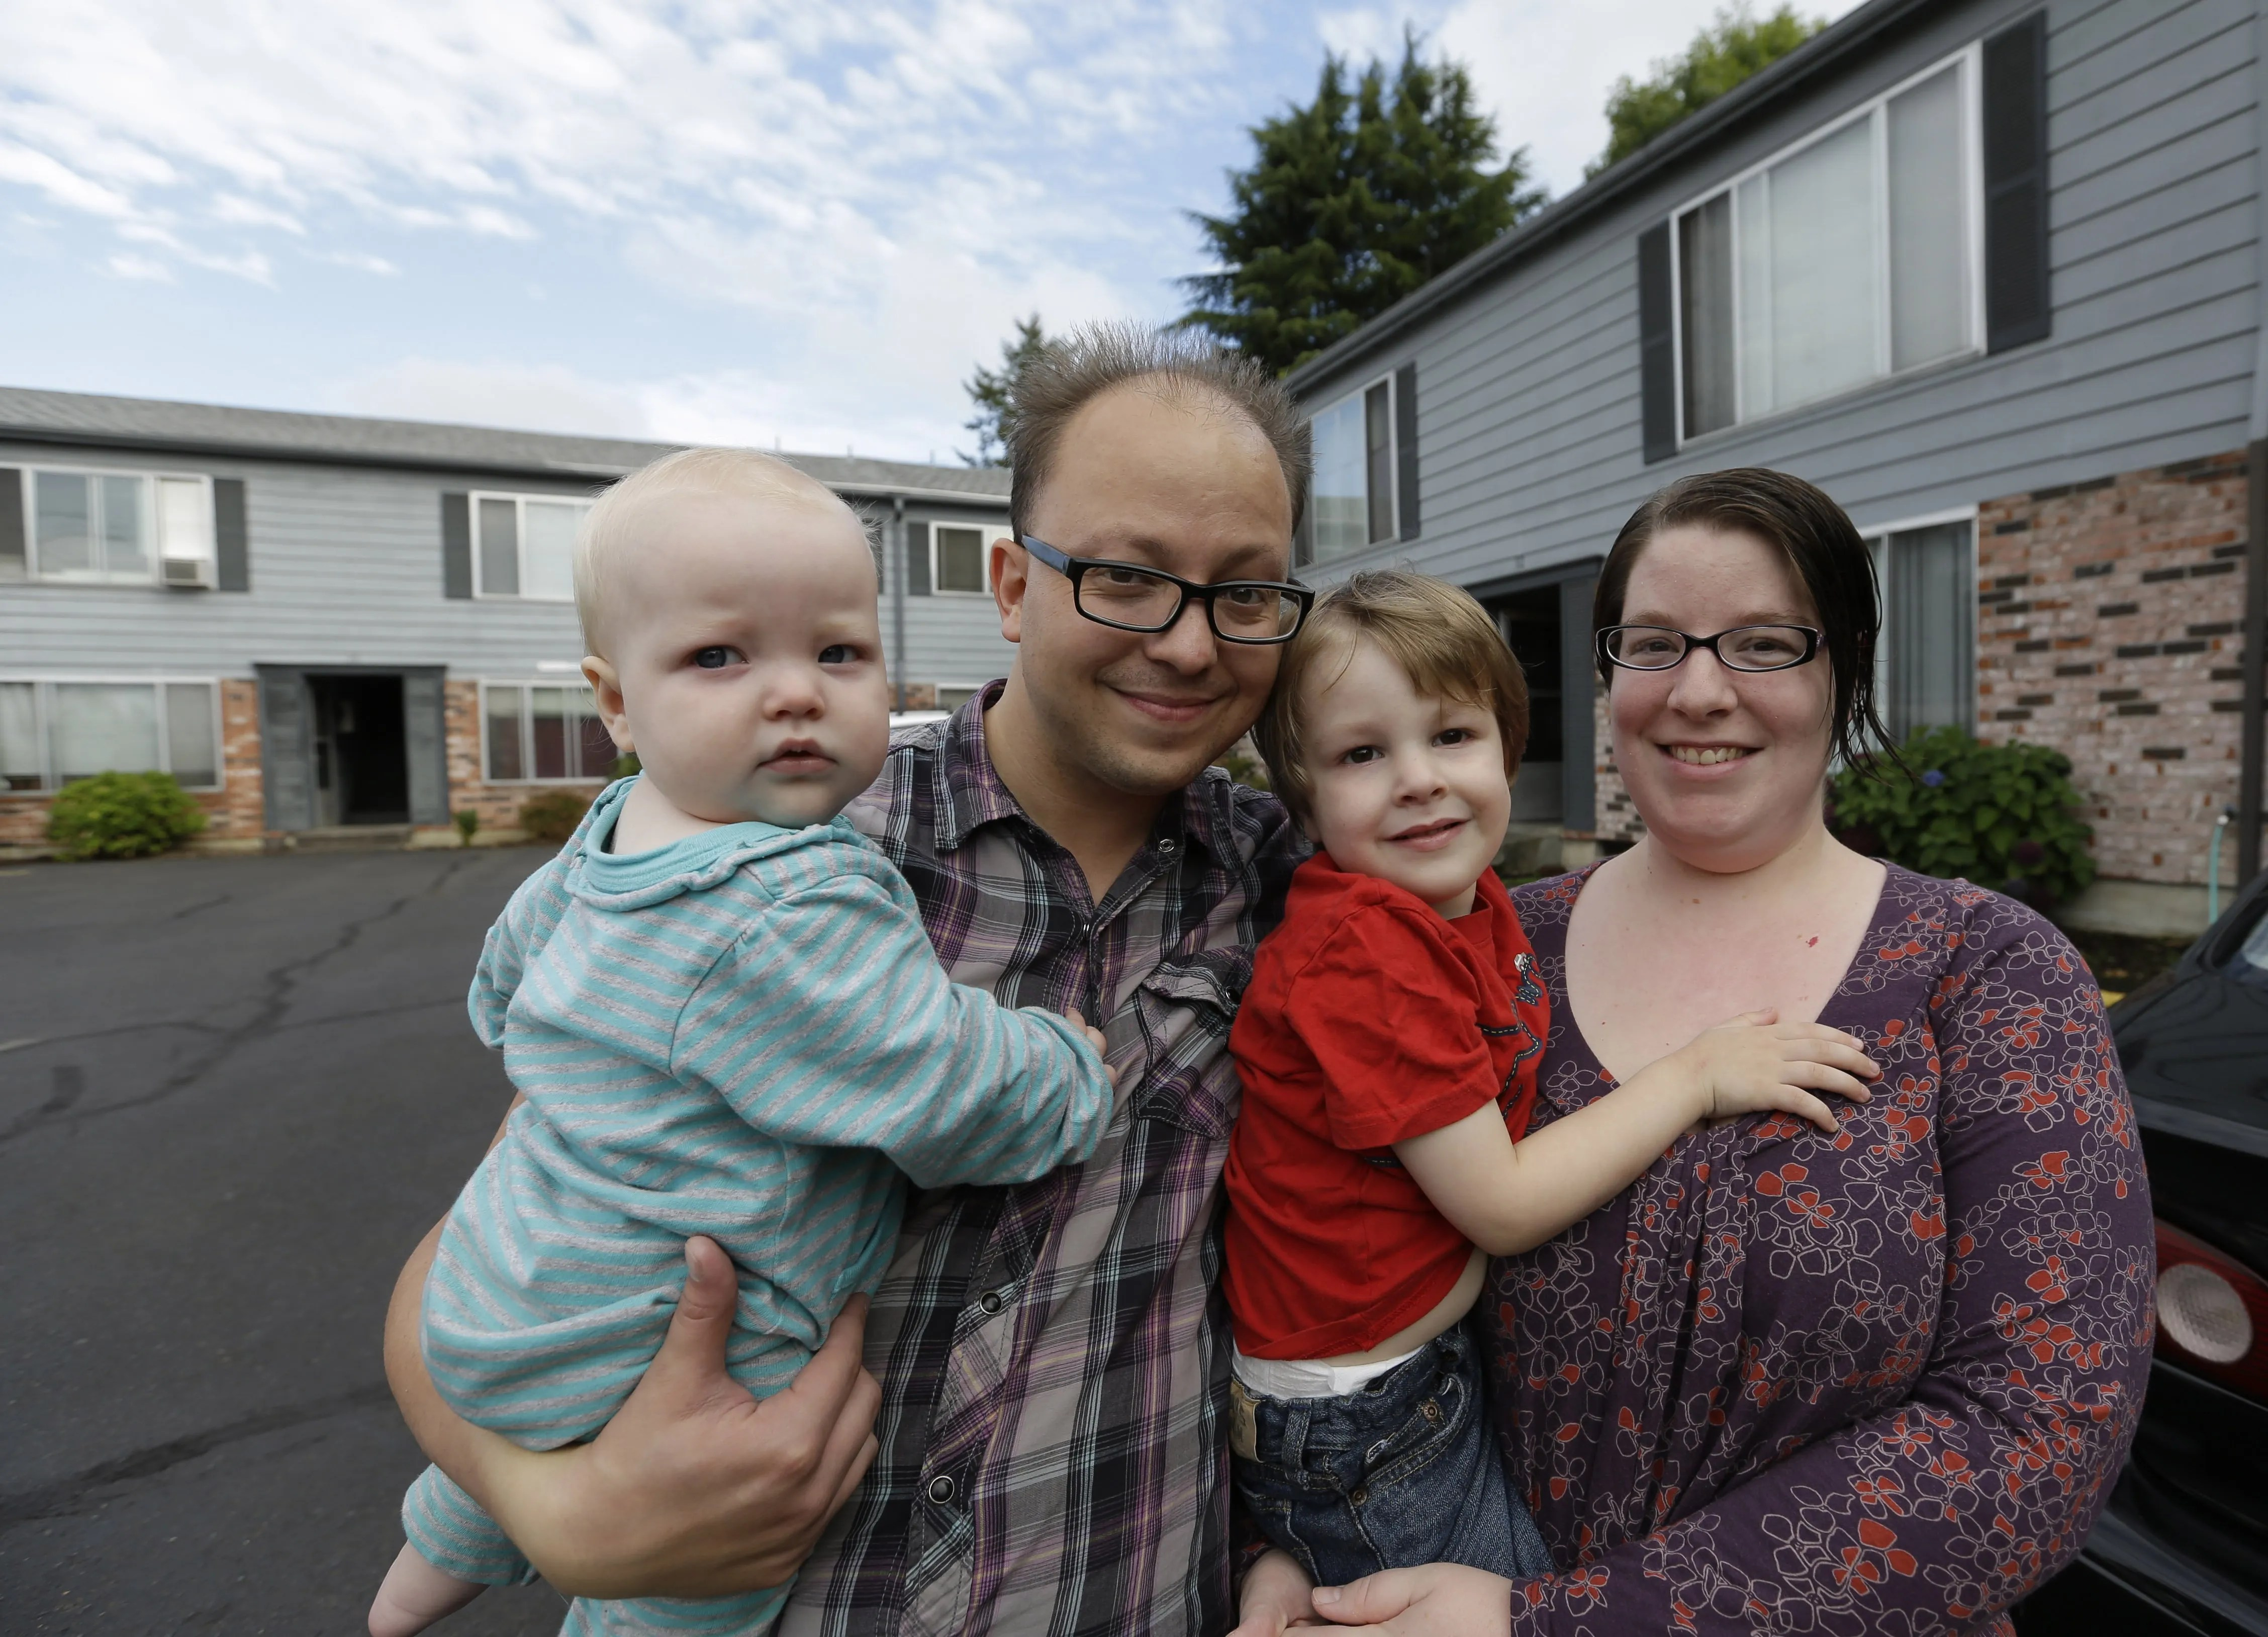 Steven and Nola Olsen in front of their Portland apartment building with Aubrielle, left, 1, and Marcus, 3. Steven Olsen had hoped to raise his two children in Portland, but a recent $200 rent increase is forcing them to move back to Missouri. (Don Ryan/The Associated Press)